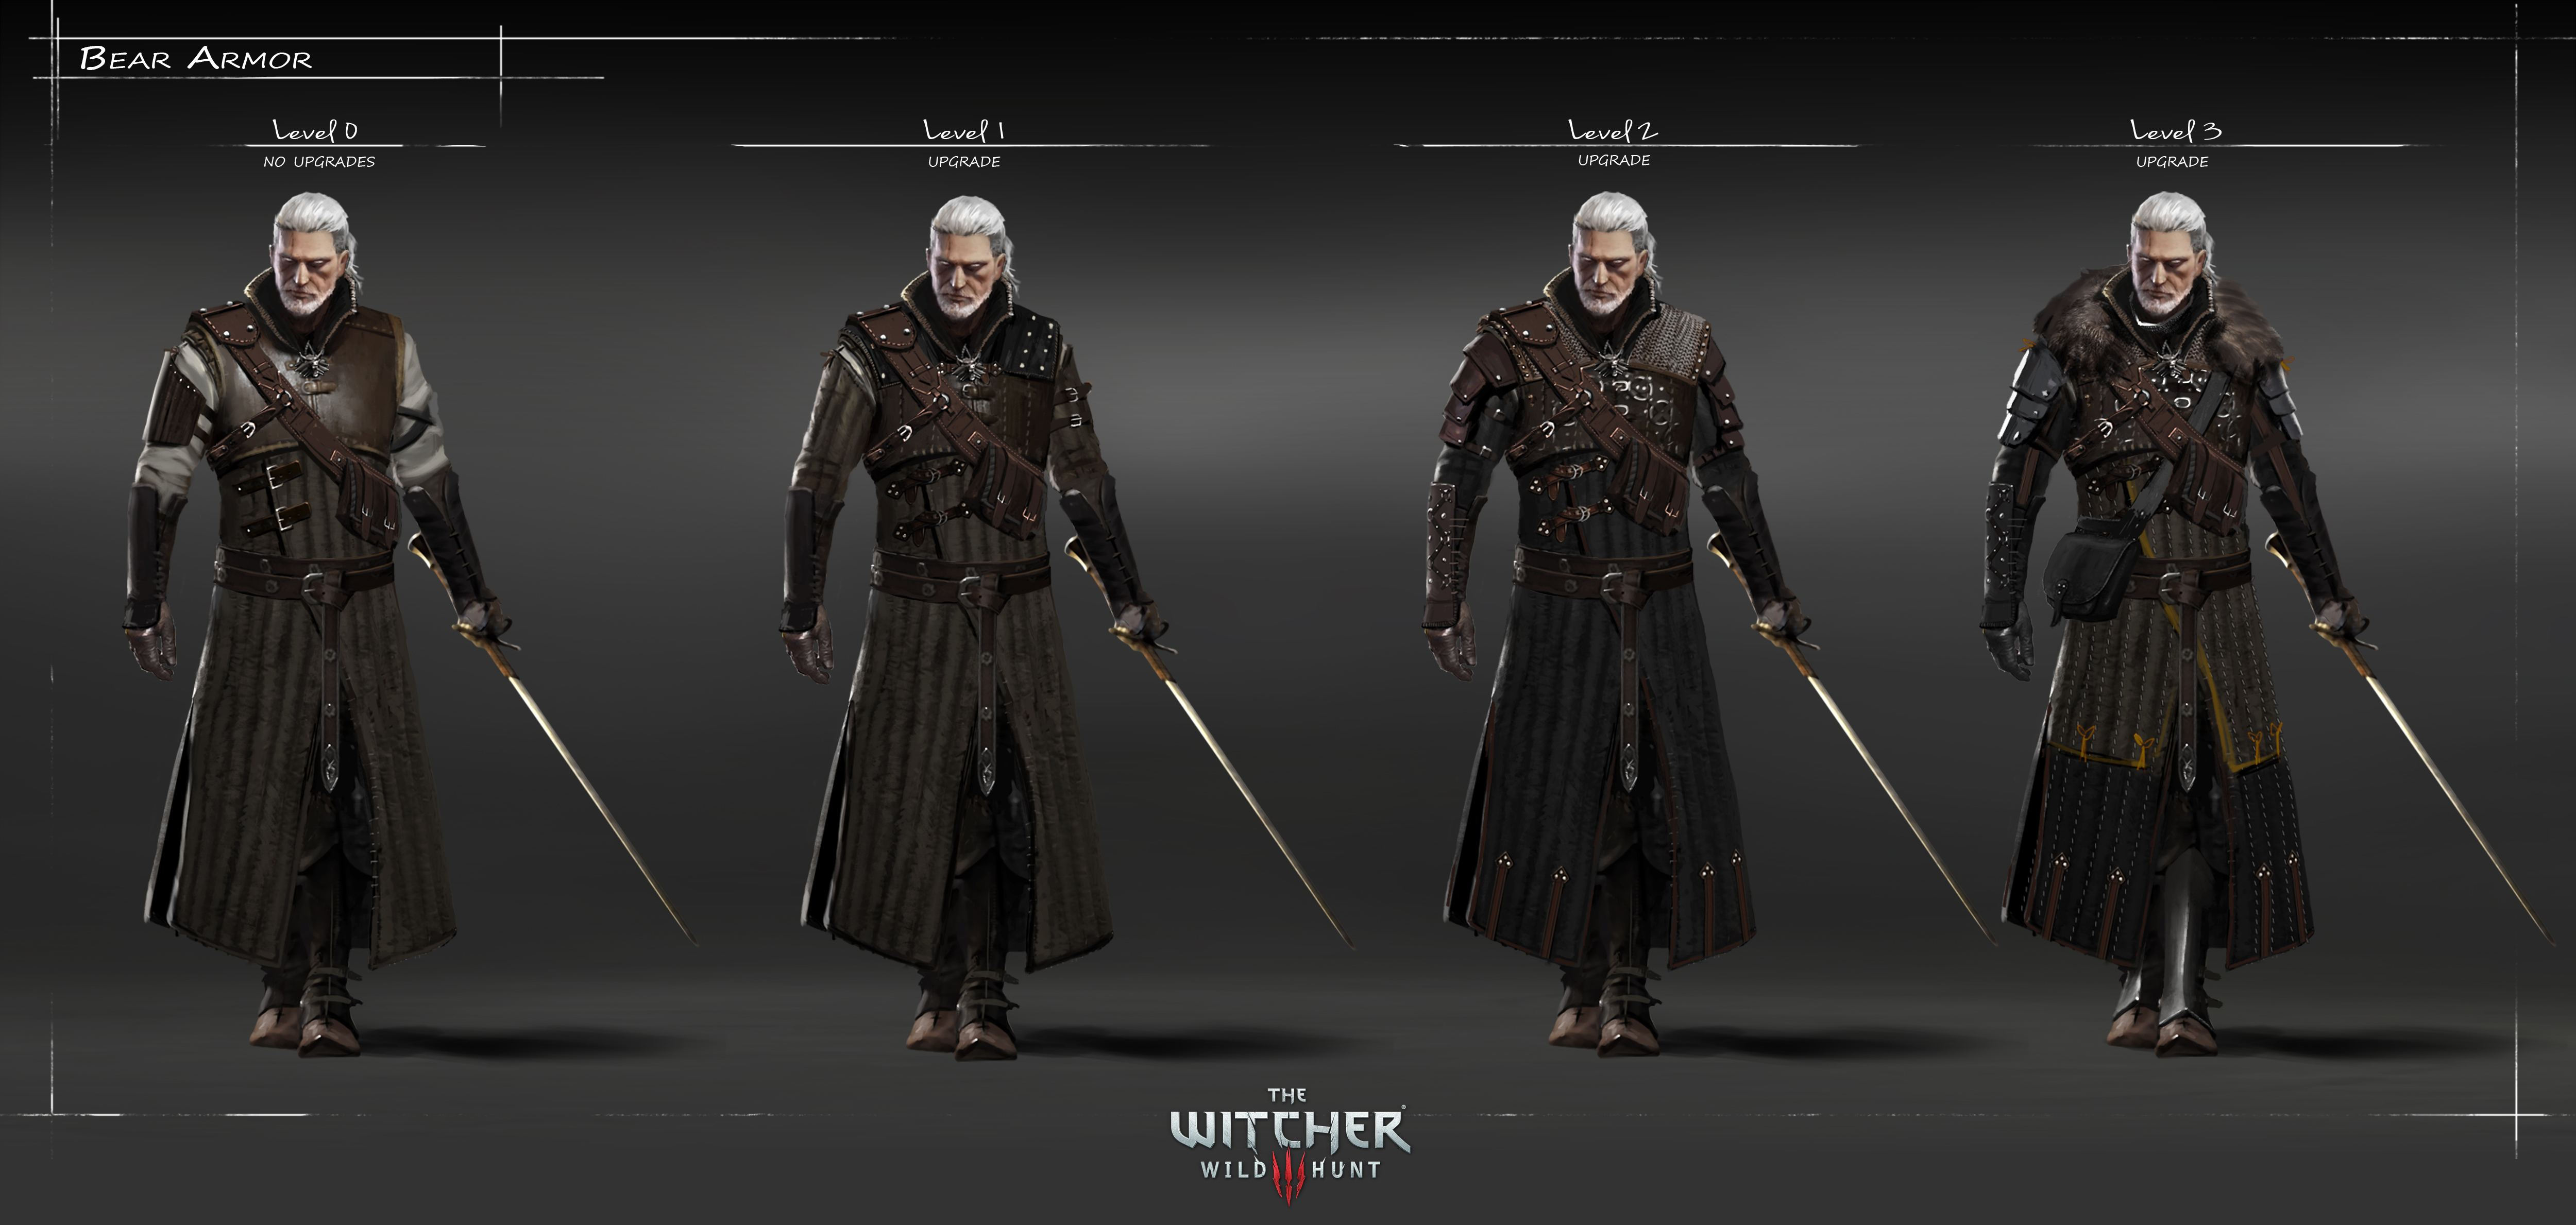 New The Witcher 3 artwork some nice 1080p screens for wallpapers 5000x2378